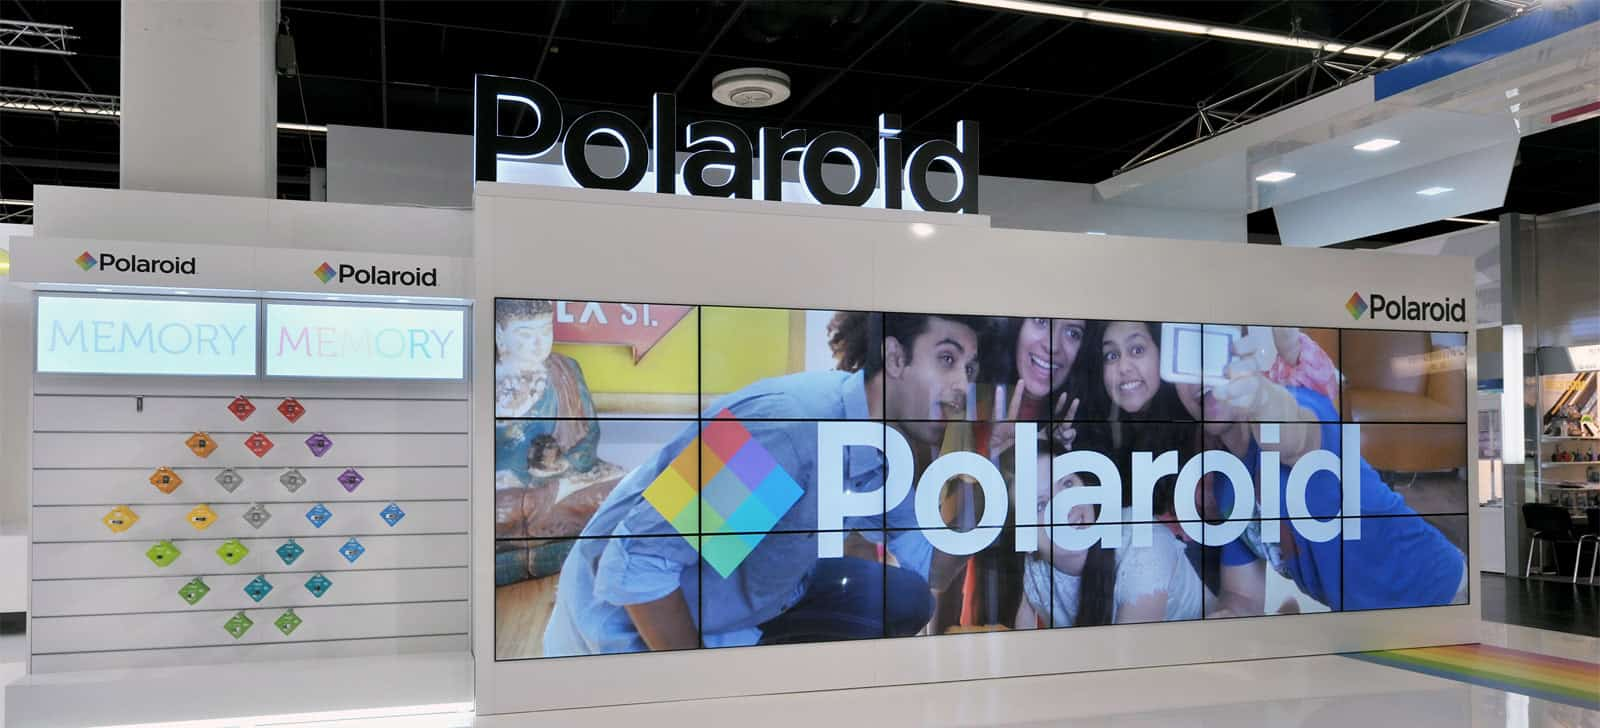 Led-videowall-rental-Barcelona-Spain